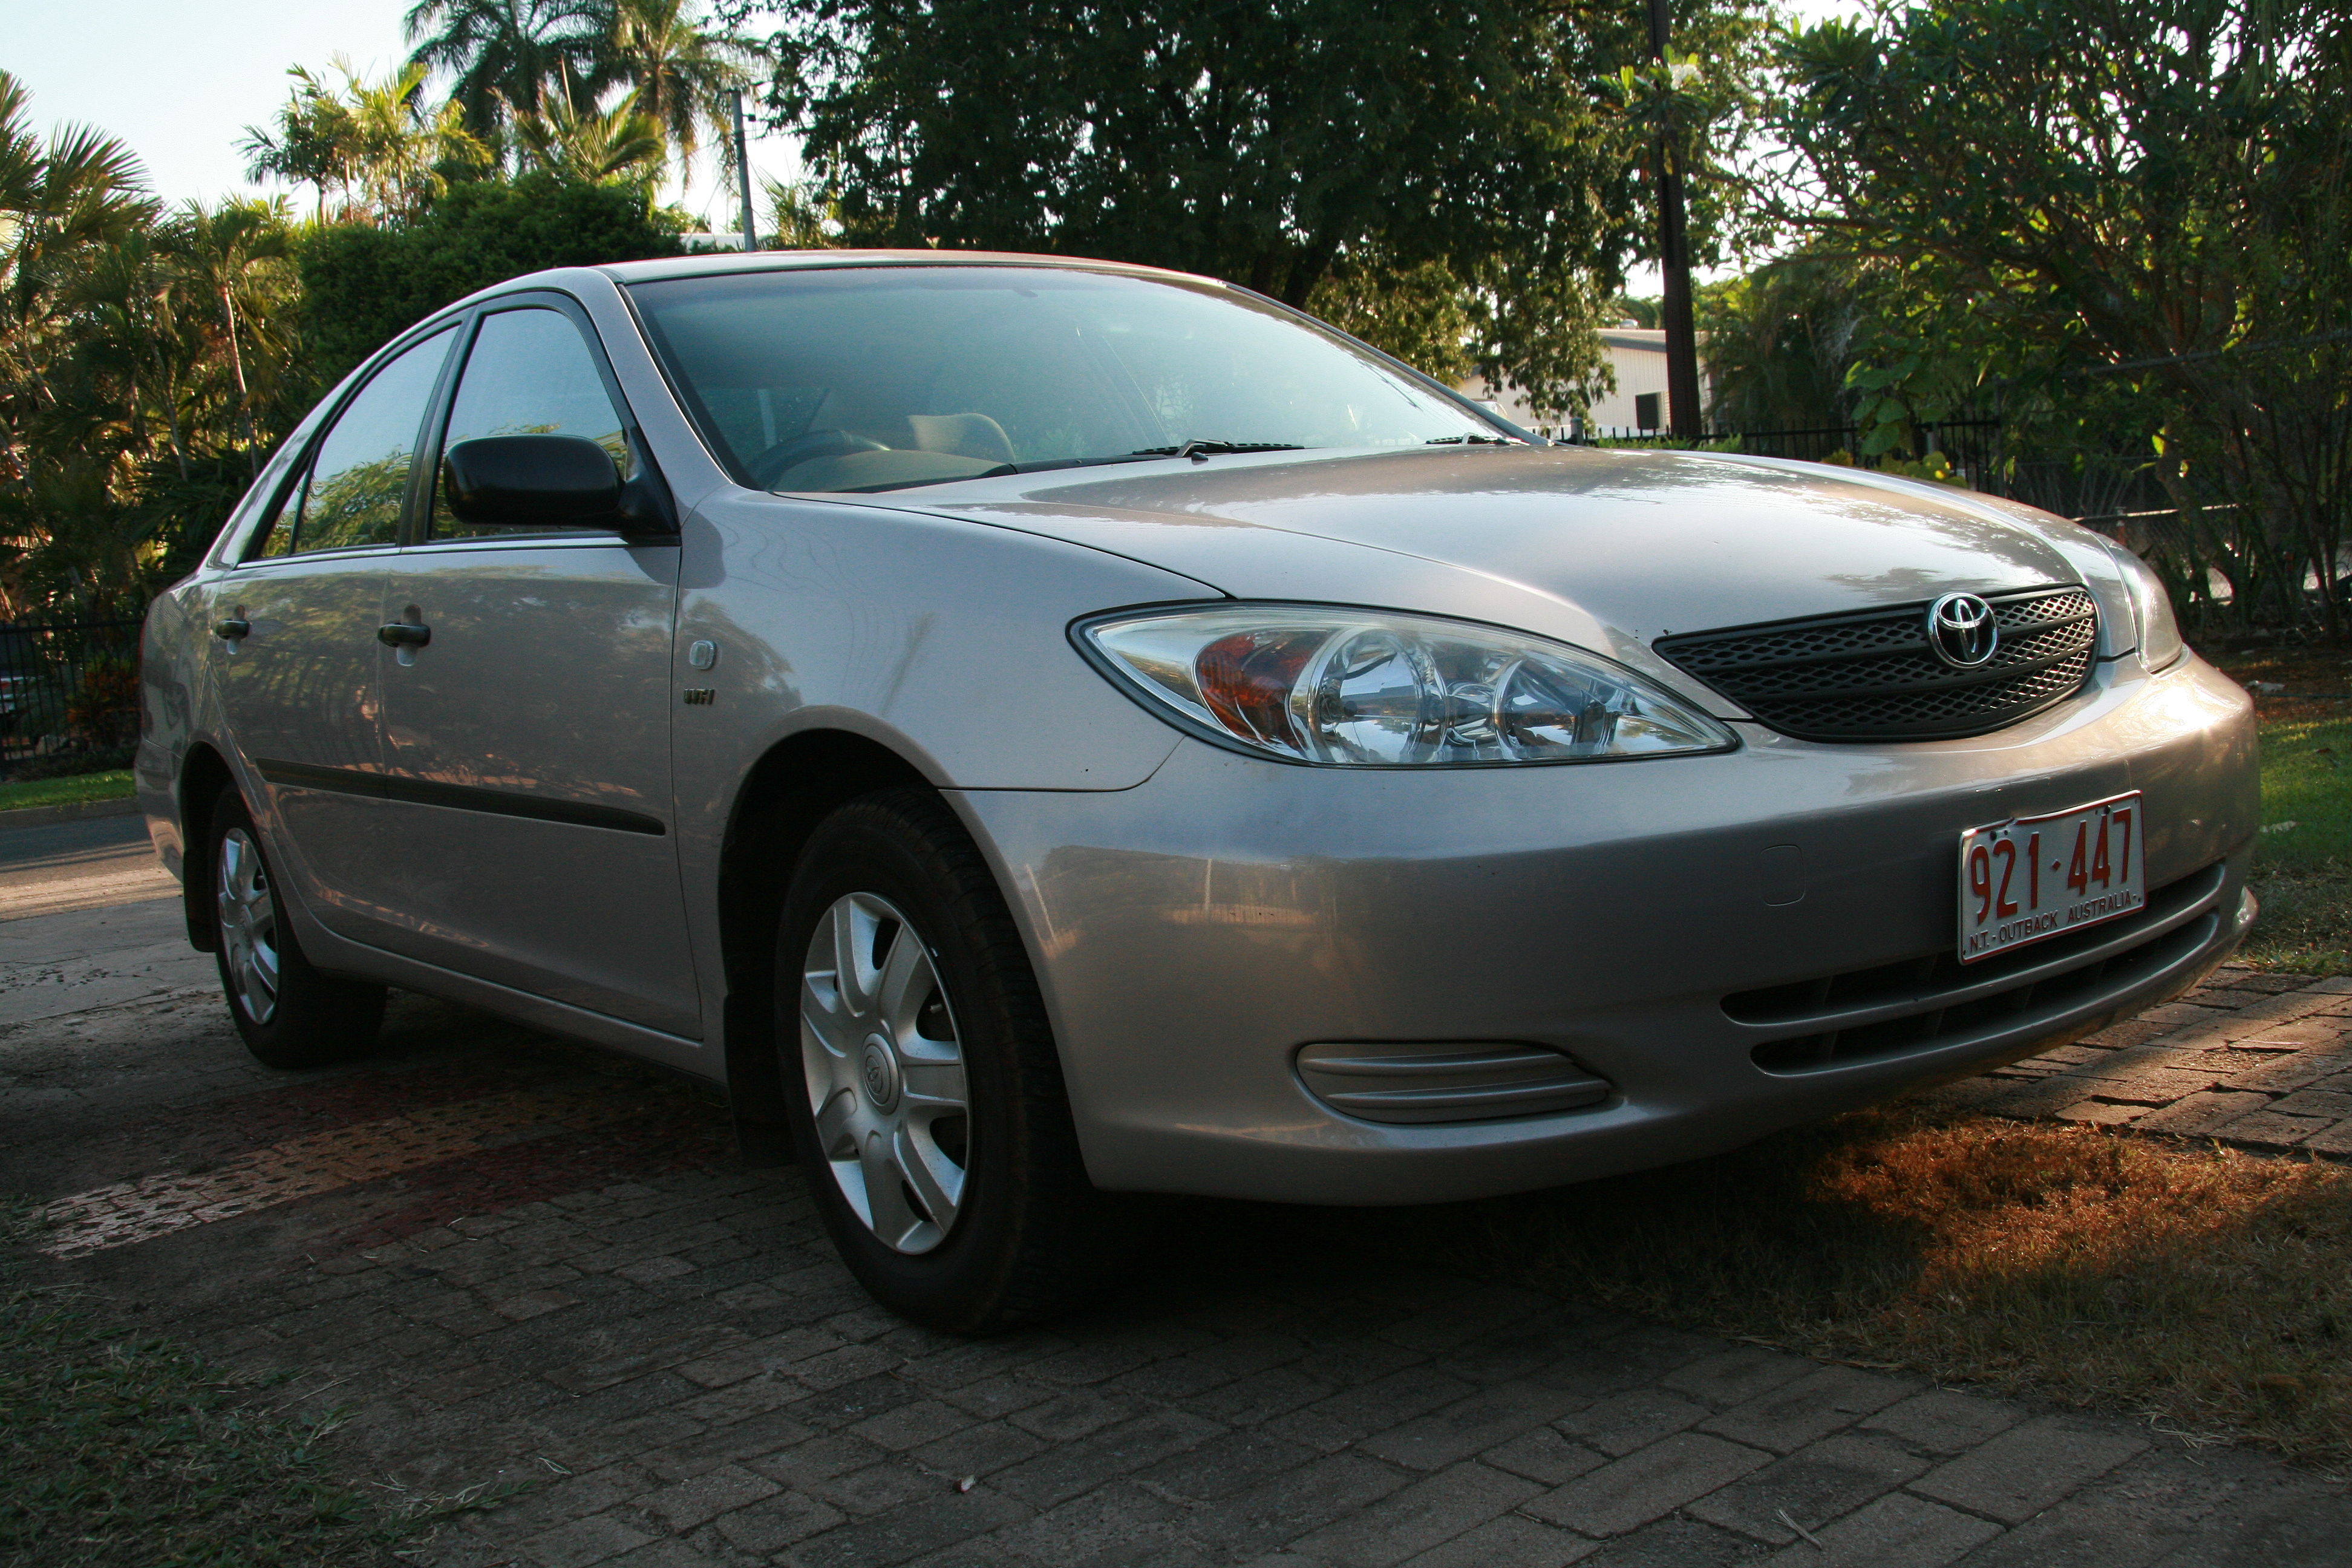 file 2003 toyota camry acv36r altise sedan. Black Bedroom Furniture Sets. Home Design Ideas